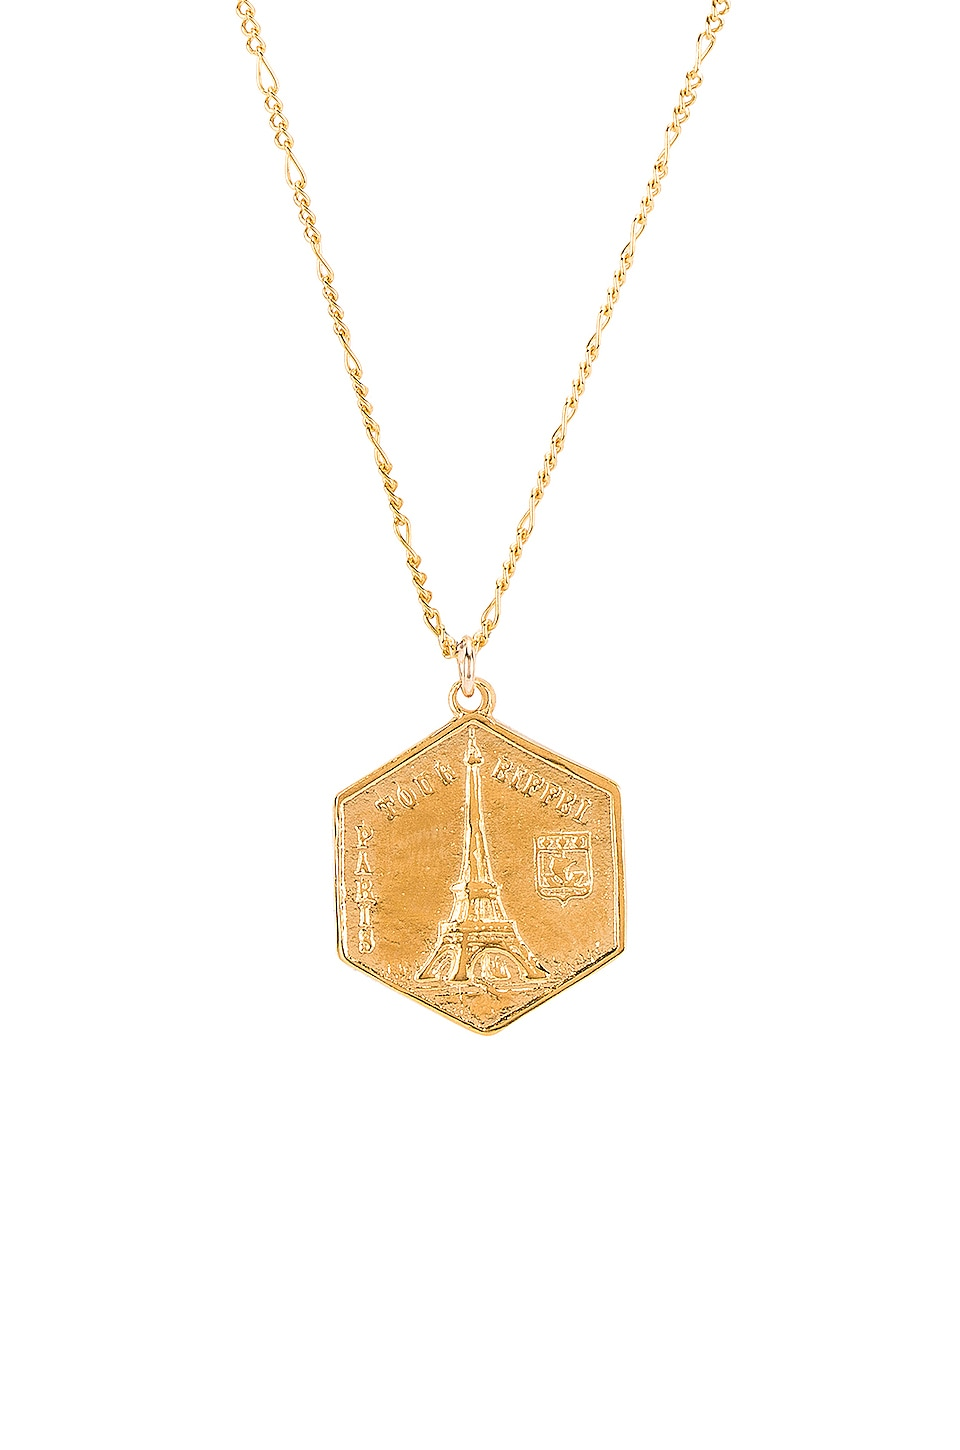 Natalie B Jewelry Tour De Eiffel Necklace in Gold